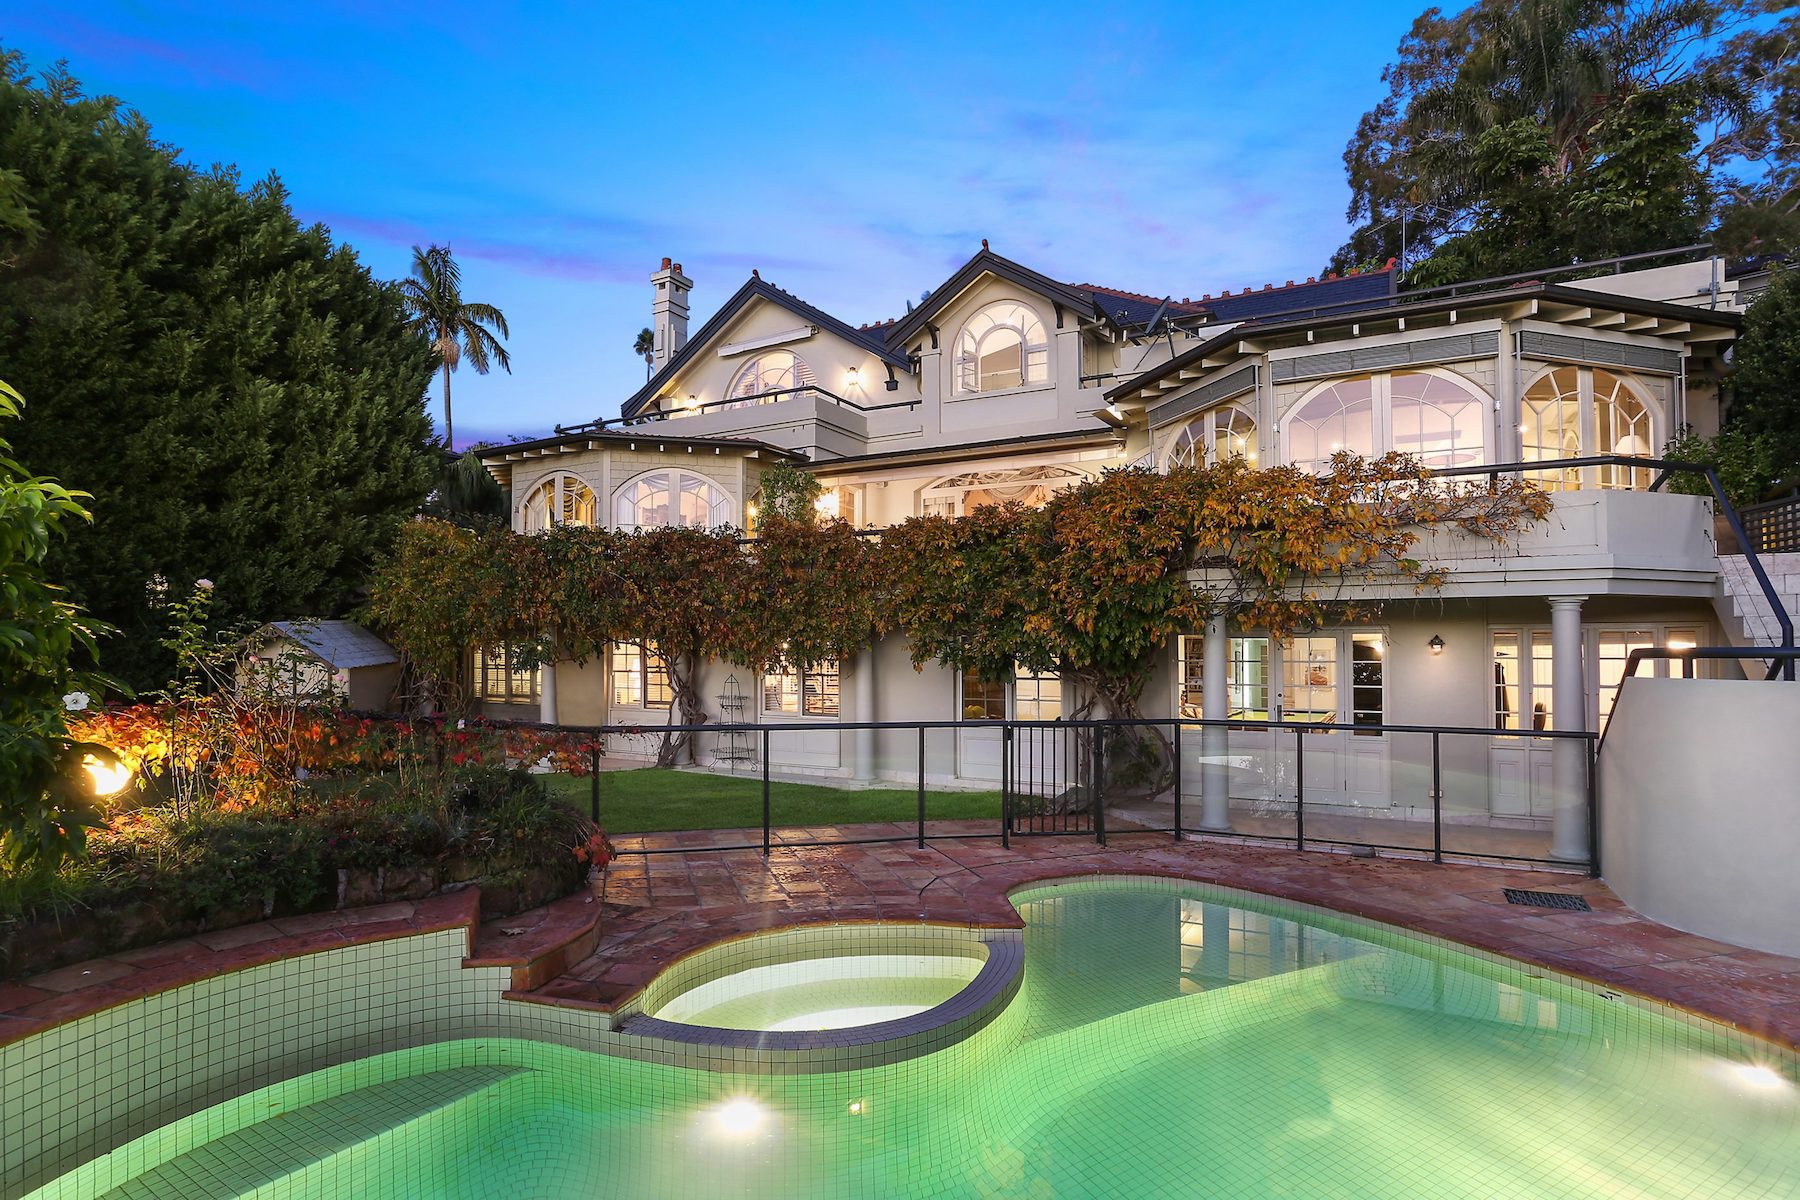 Other Residential for Sale at Woolwich, Sydney Sydney, New South Wales 2110 Australia